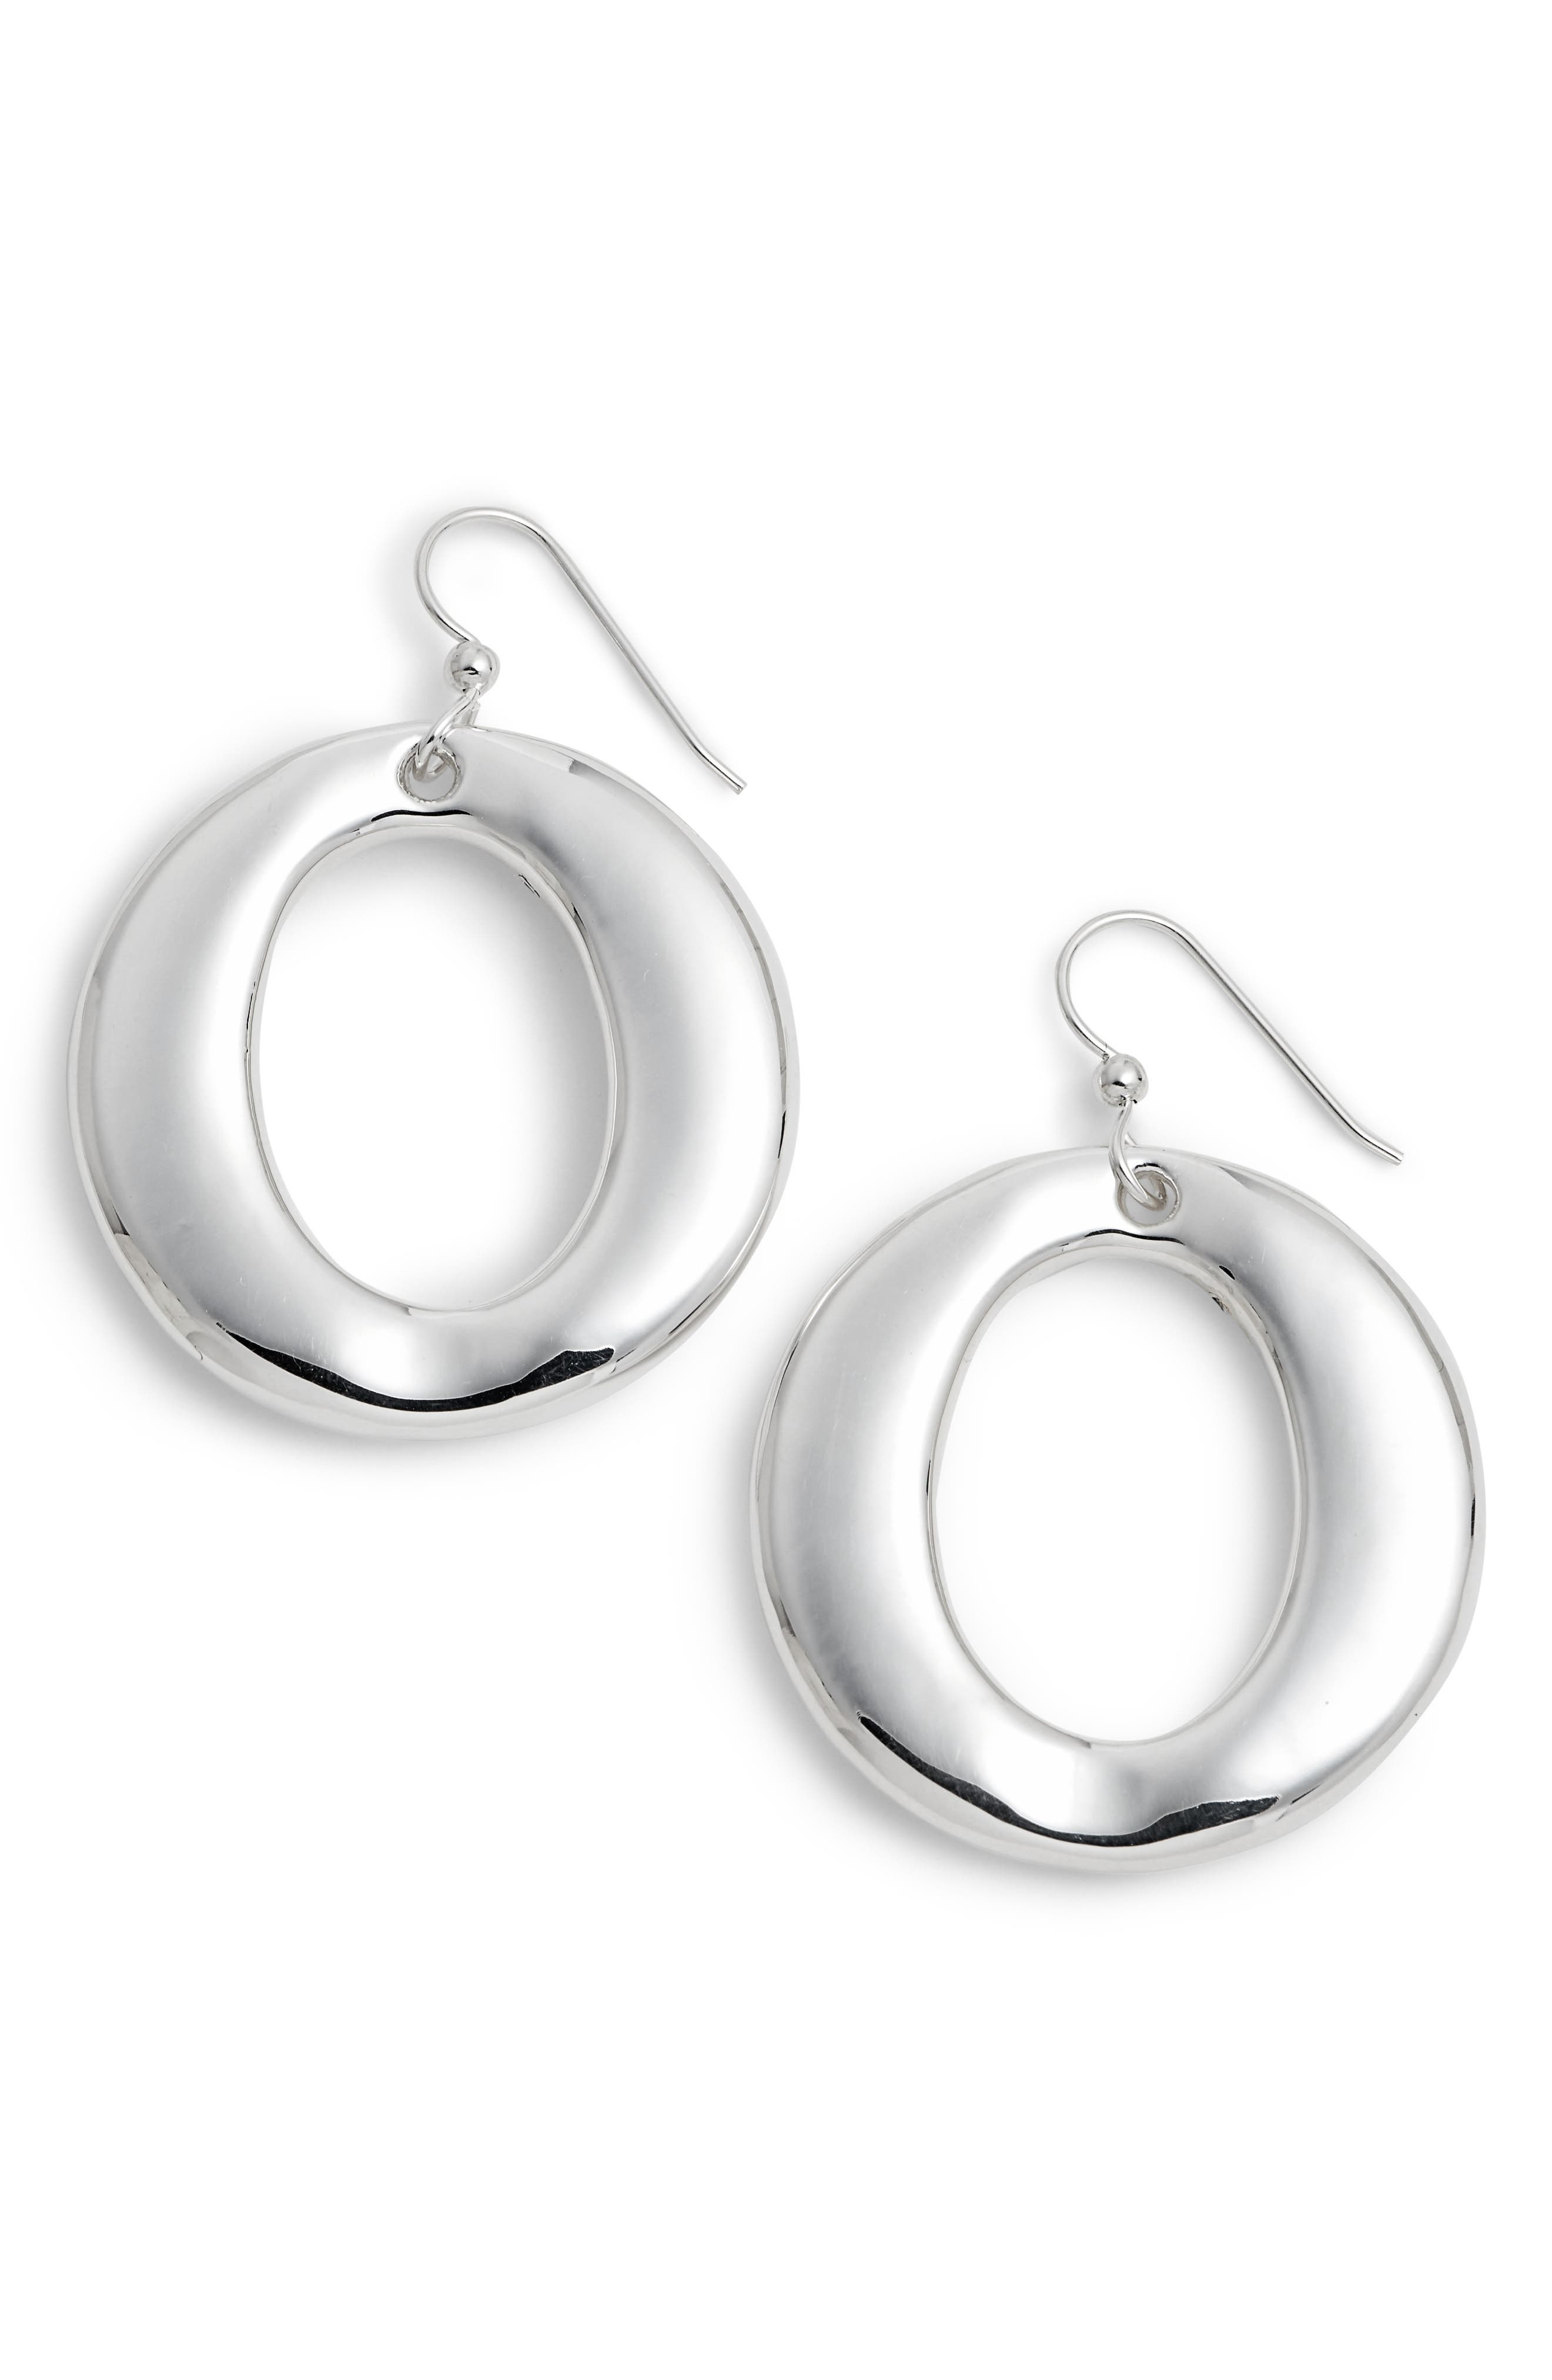 Round Open Wire Hoop Earrings,                             Main thumbnail 1, color,                             Silver